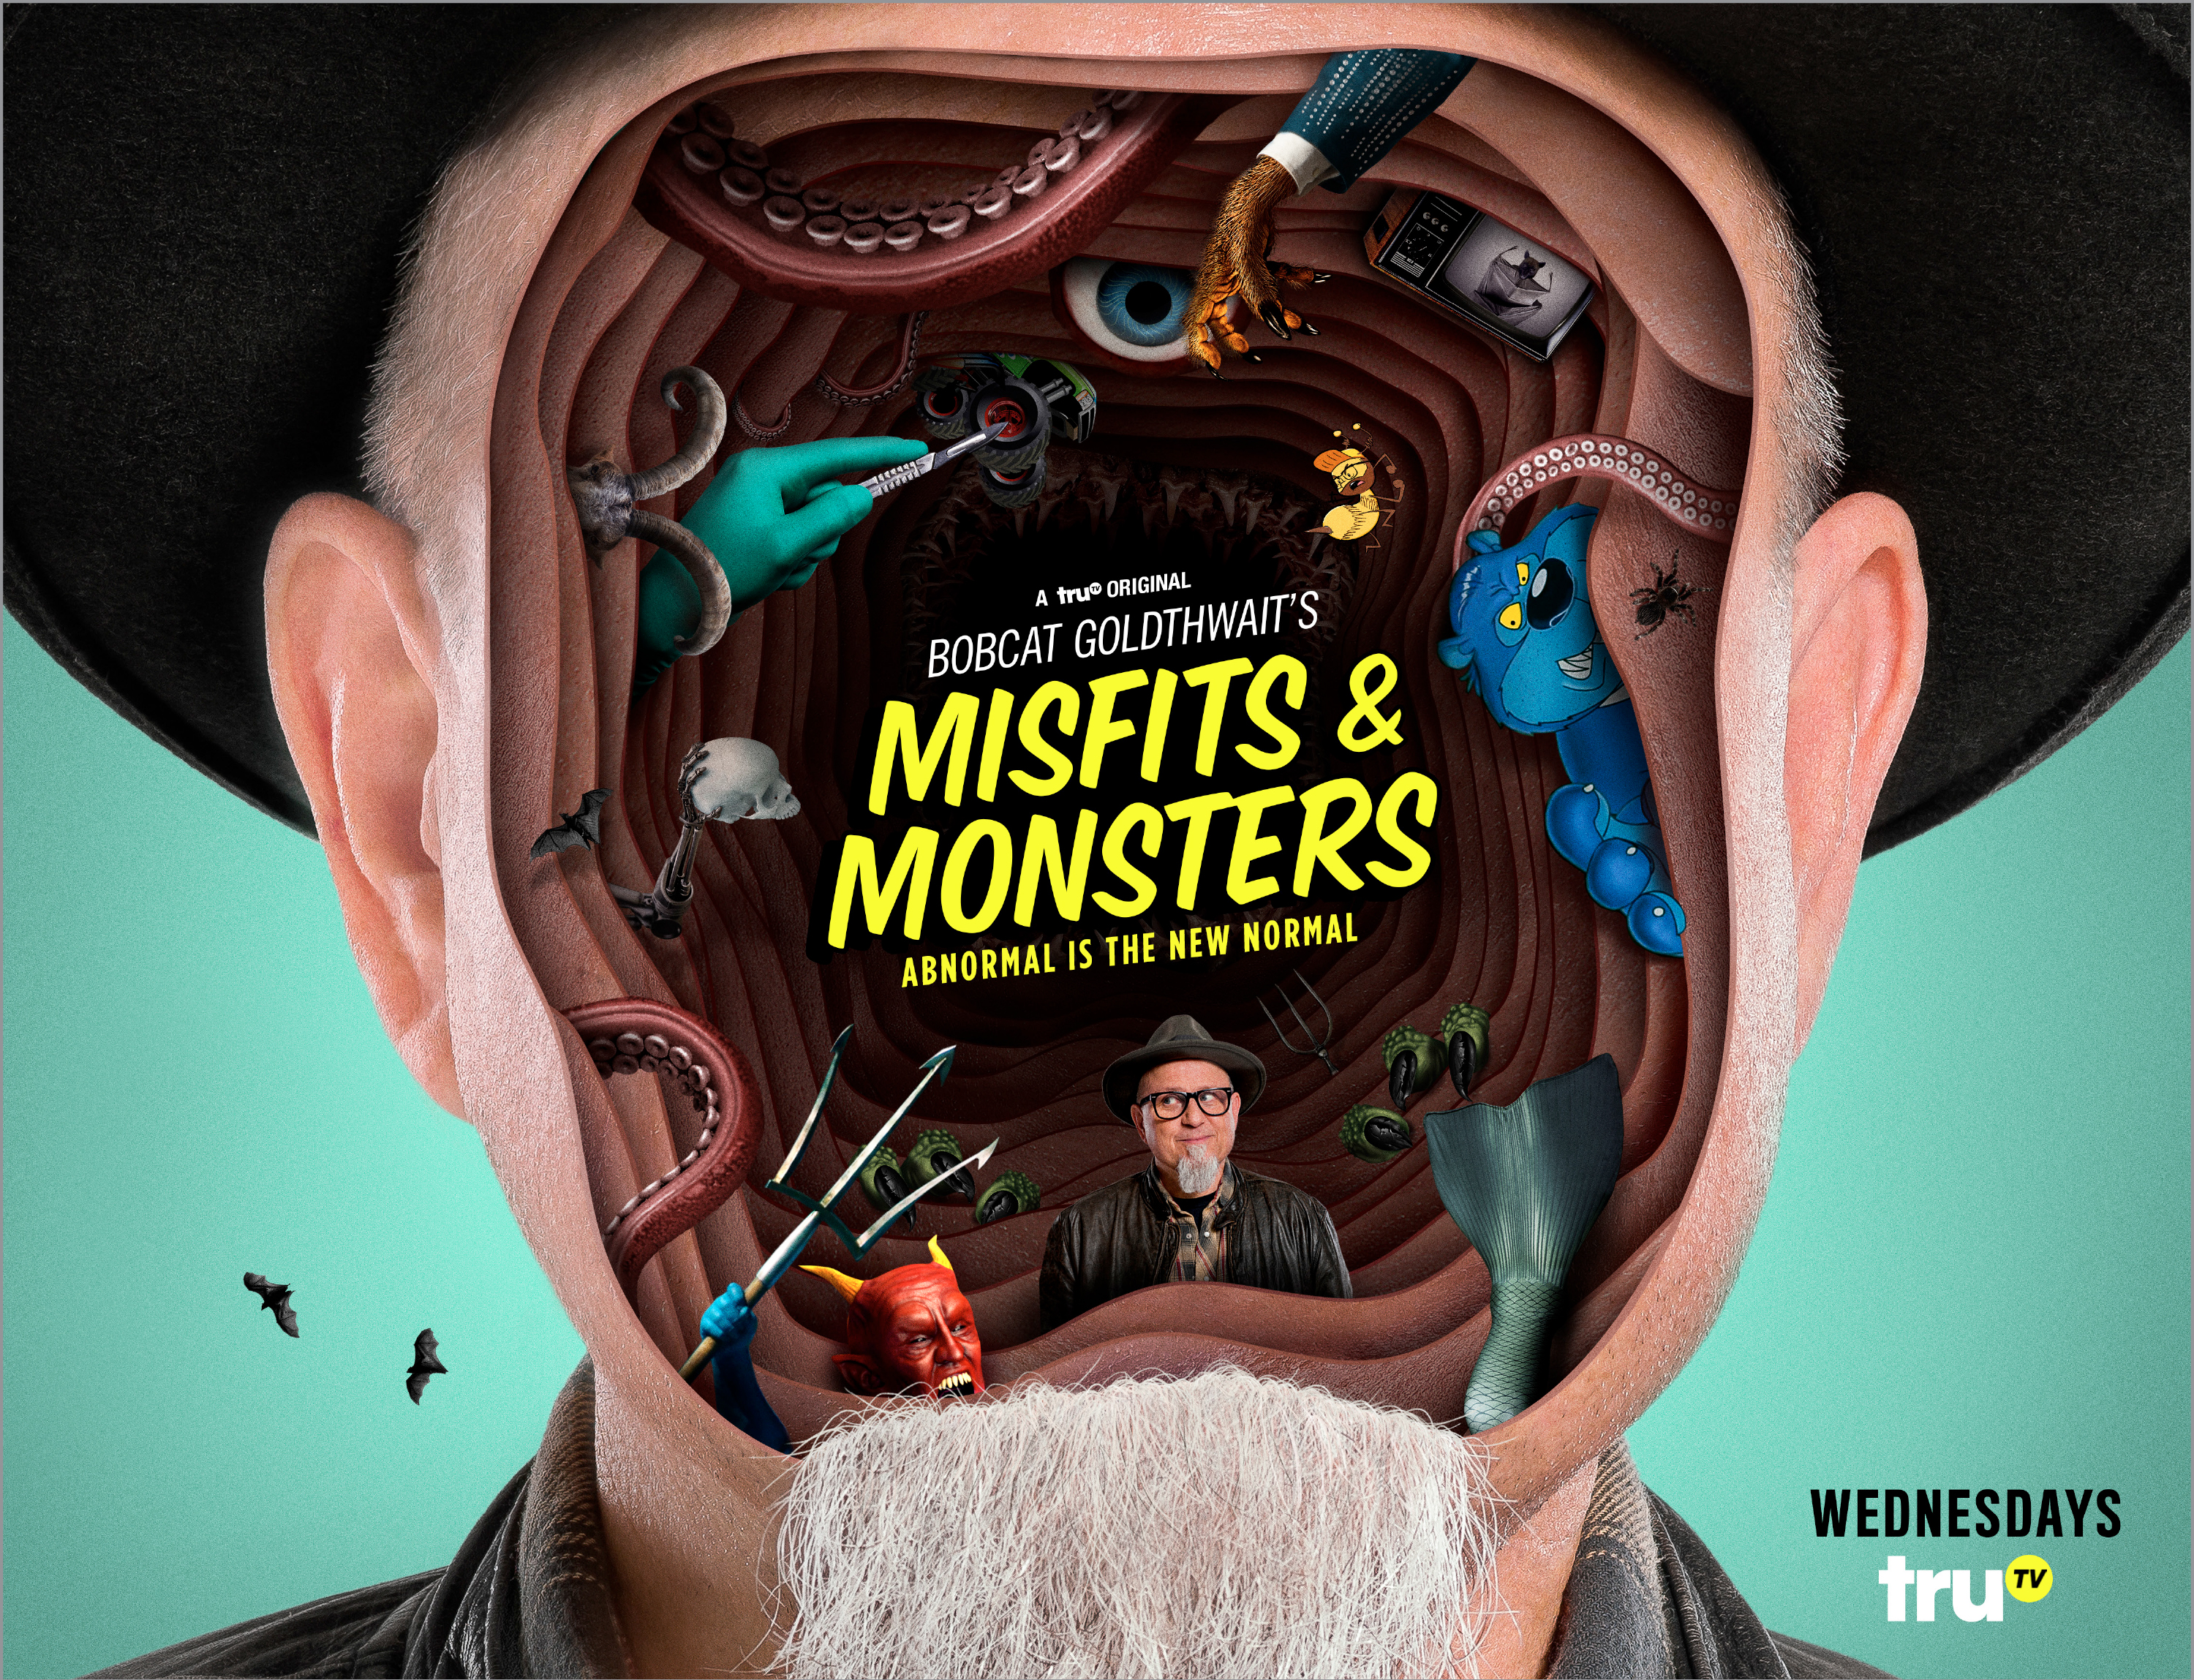 Bobcat Goldthwait's Misfits and Monsters - Bobcat Goldthwait's Misfits and Monsters